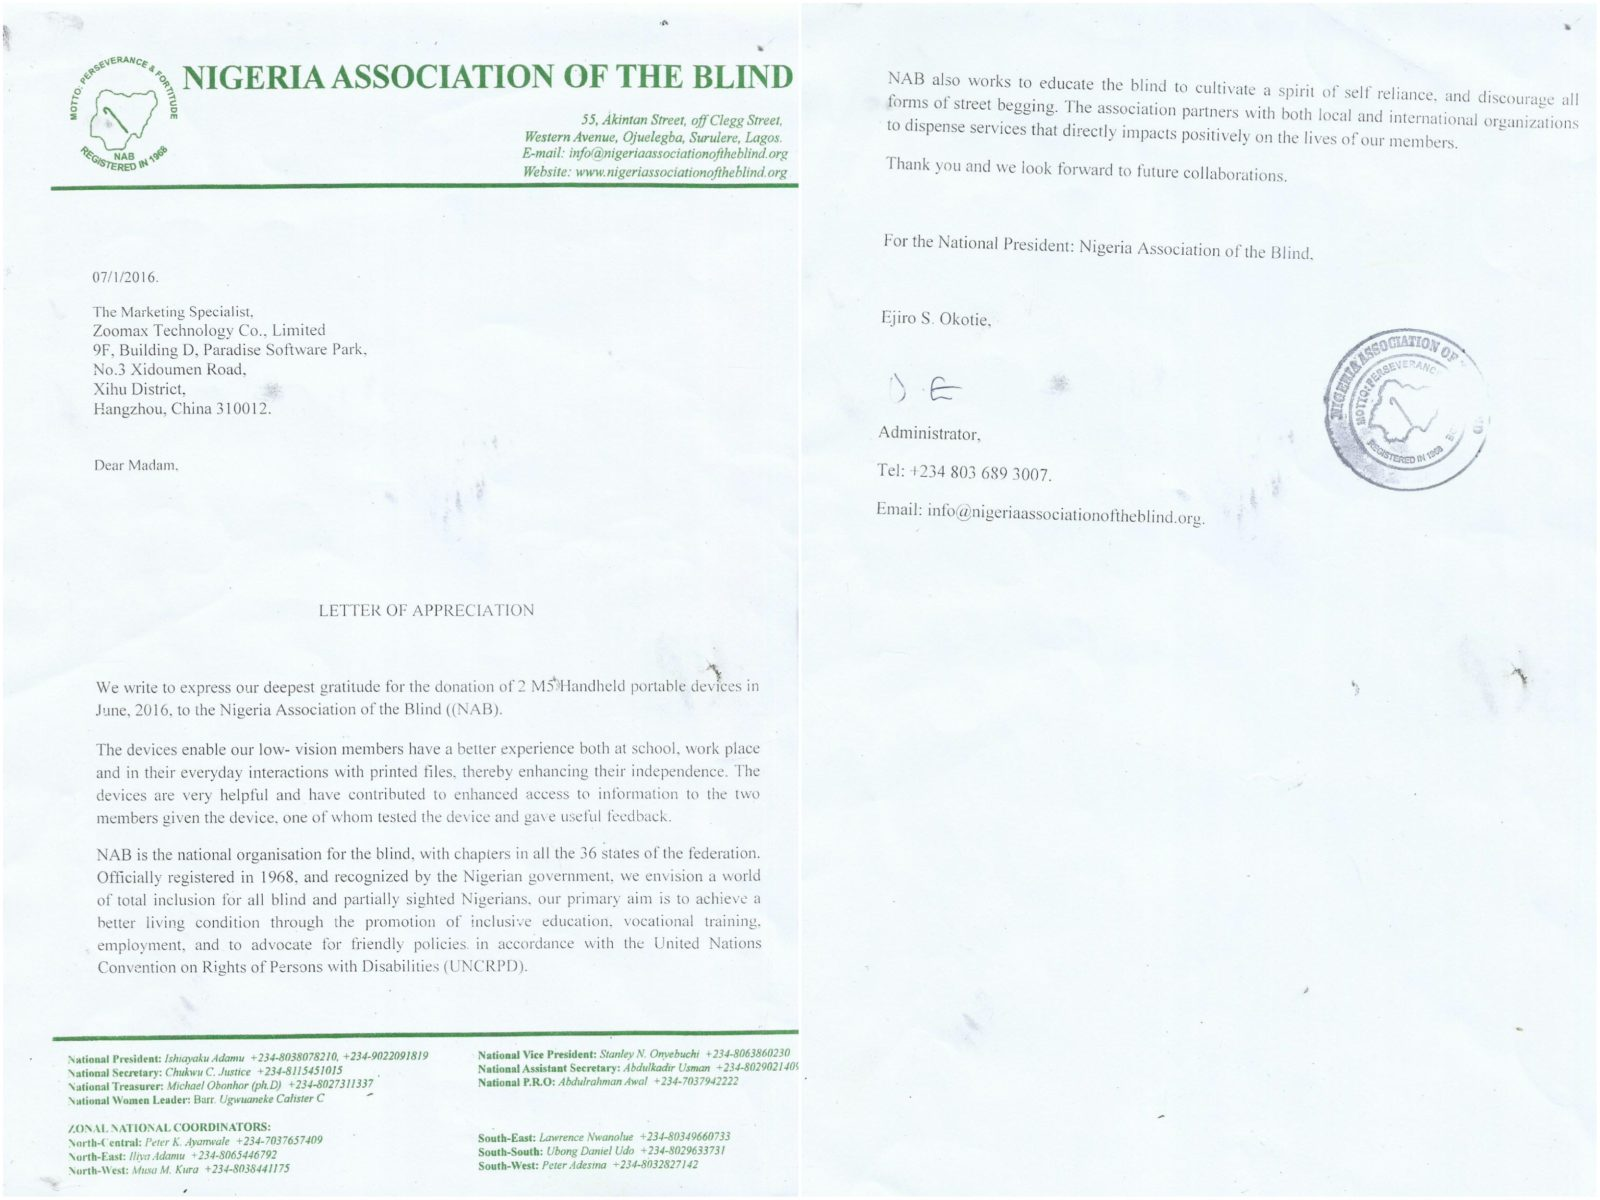 thanks letter from NAB